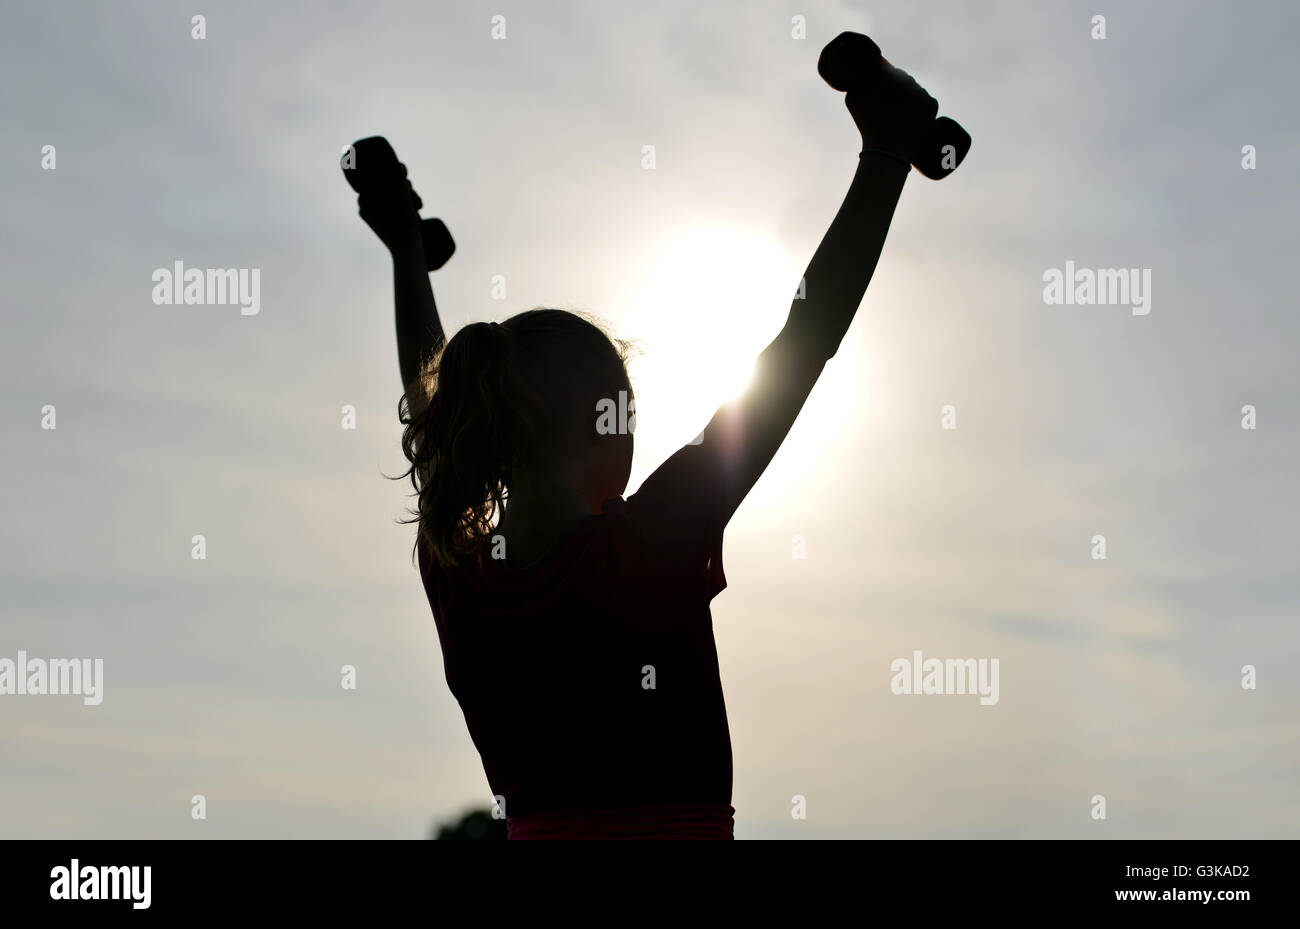 Silhouette of girl exercising outside - Stock Image